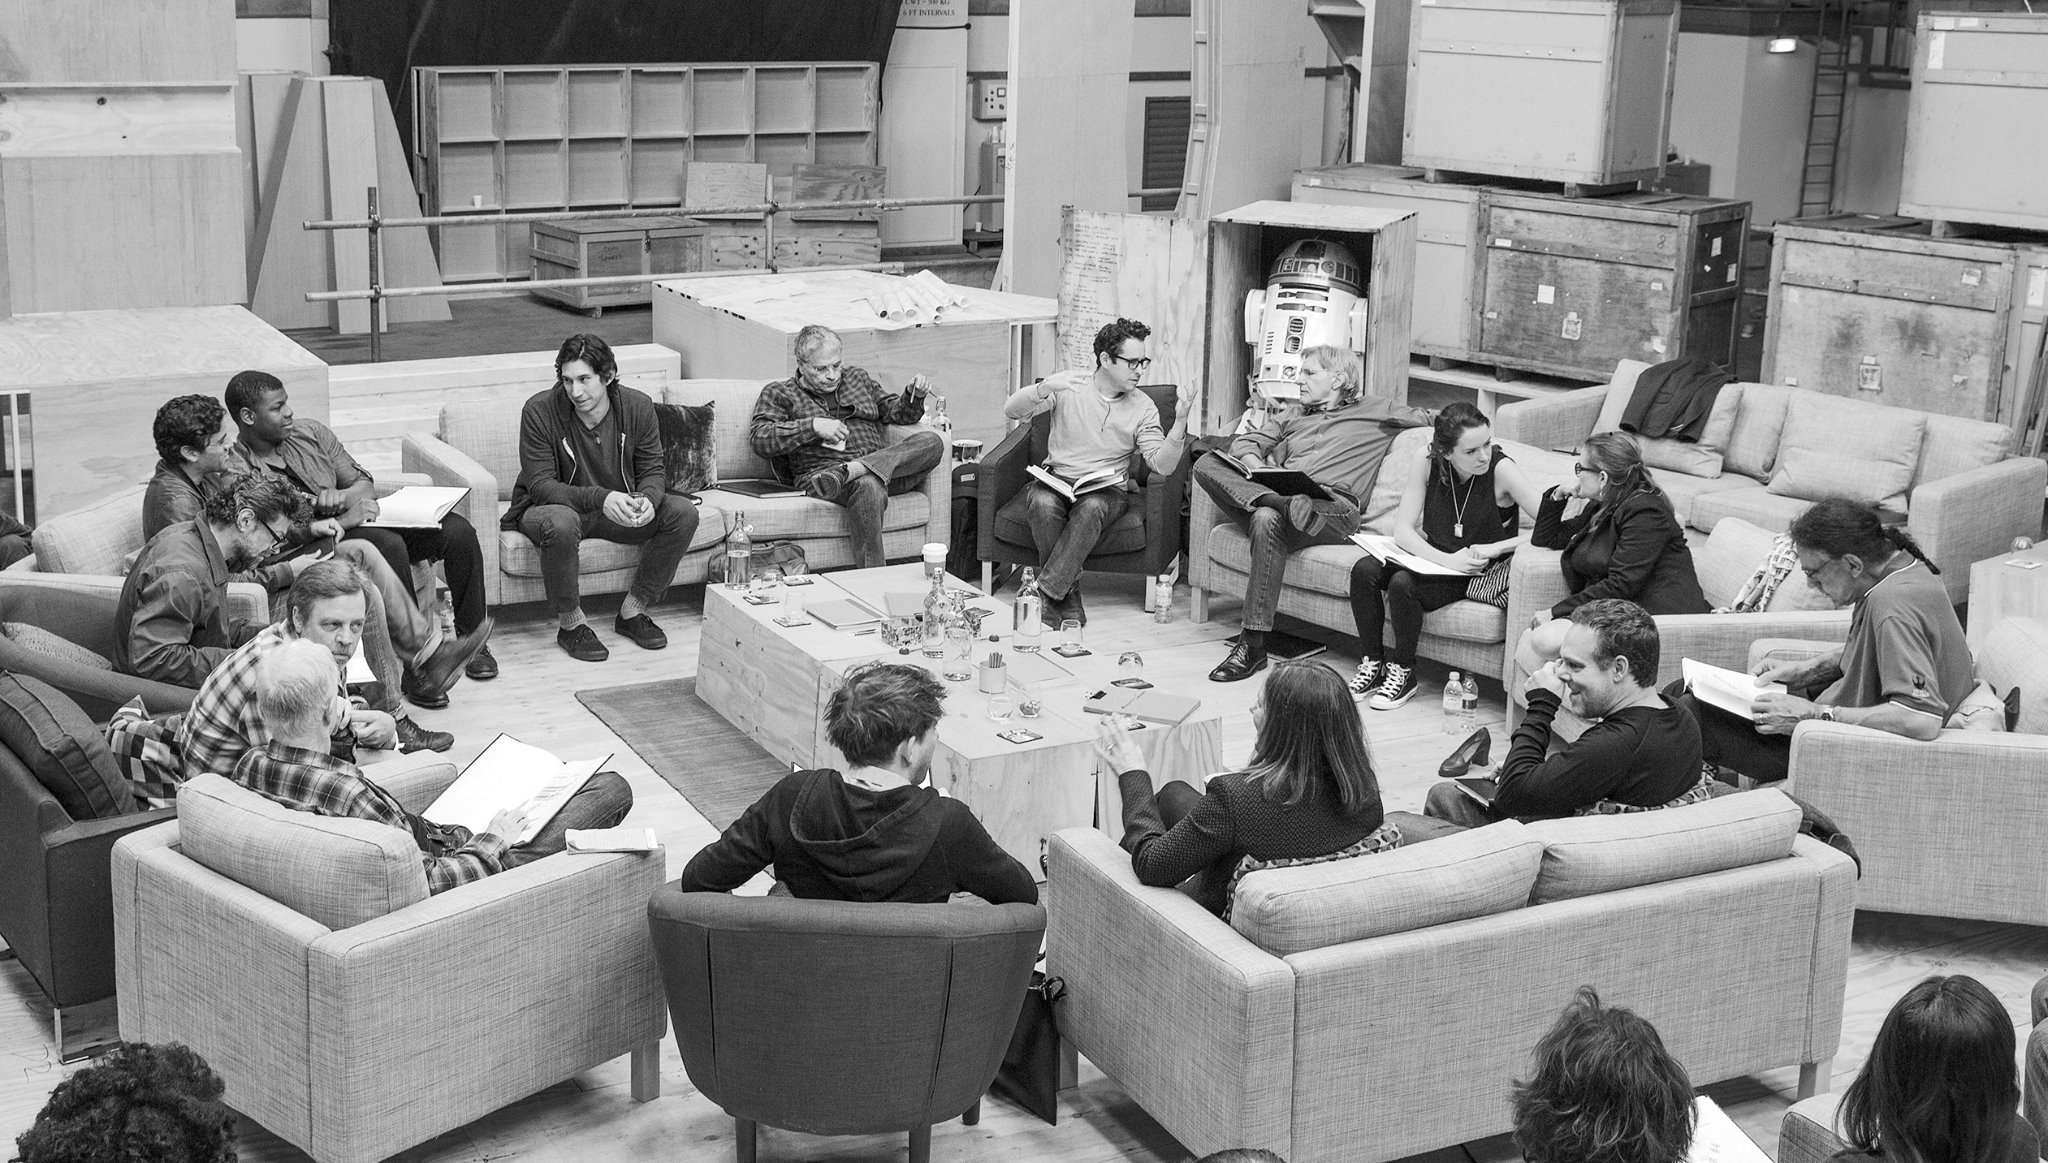 Star Wars 7 Casting Photo